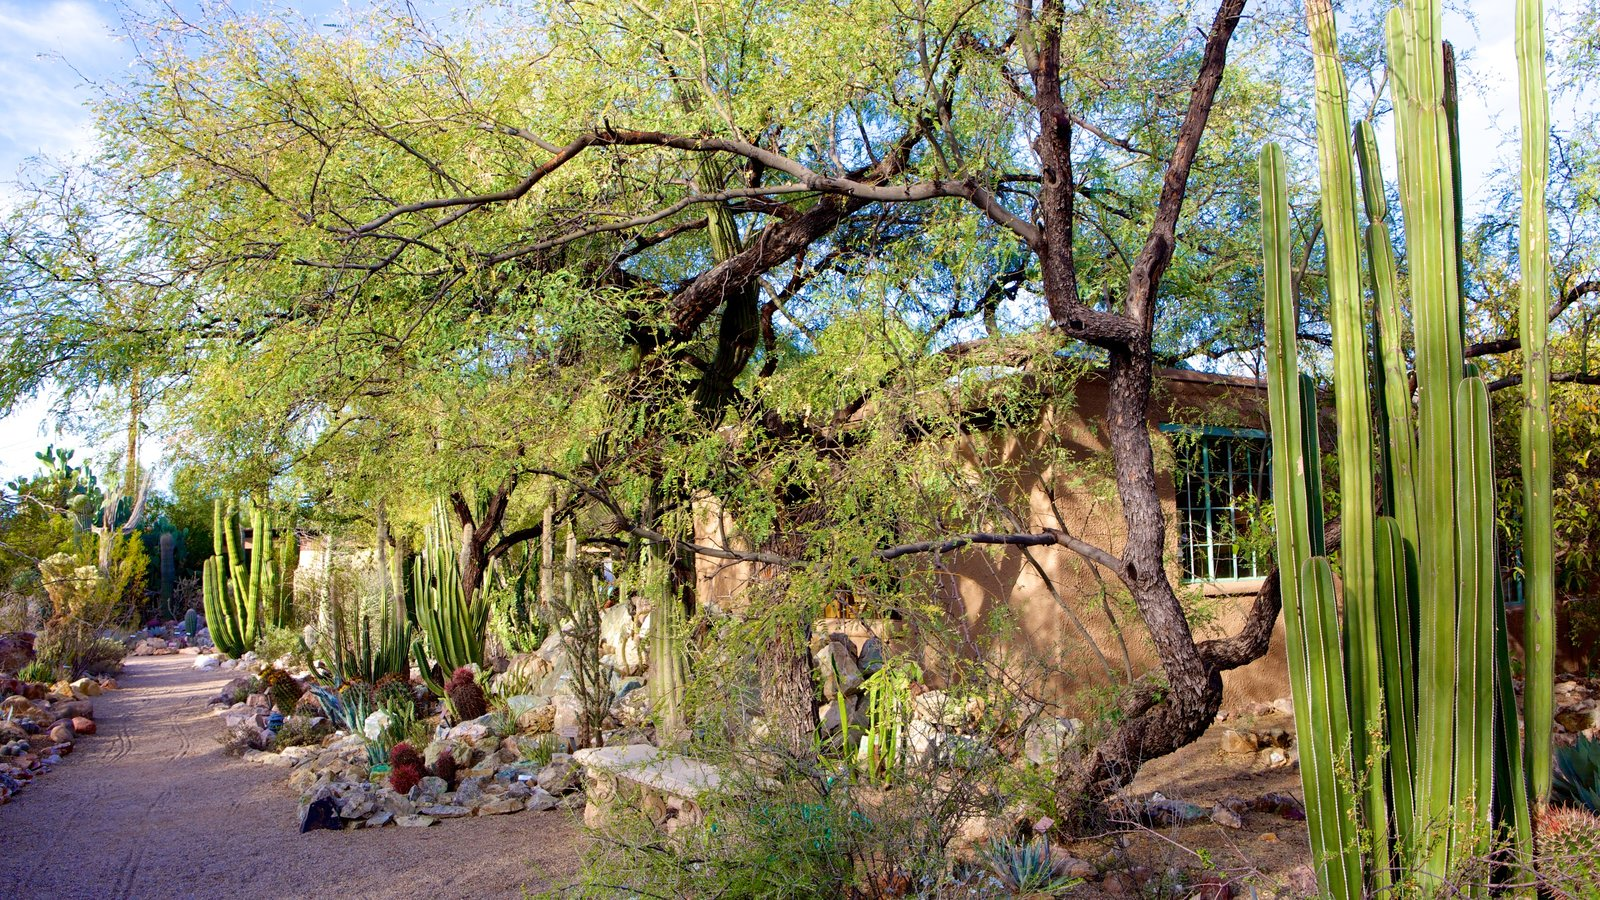 Incroyable Tucson Botanical Gardens Showing A Park